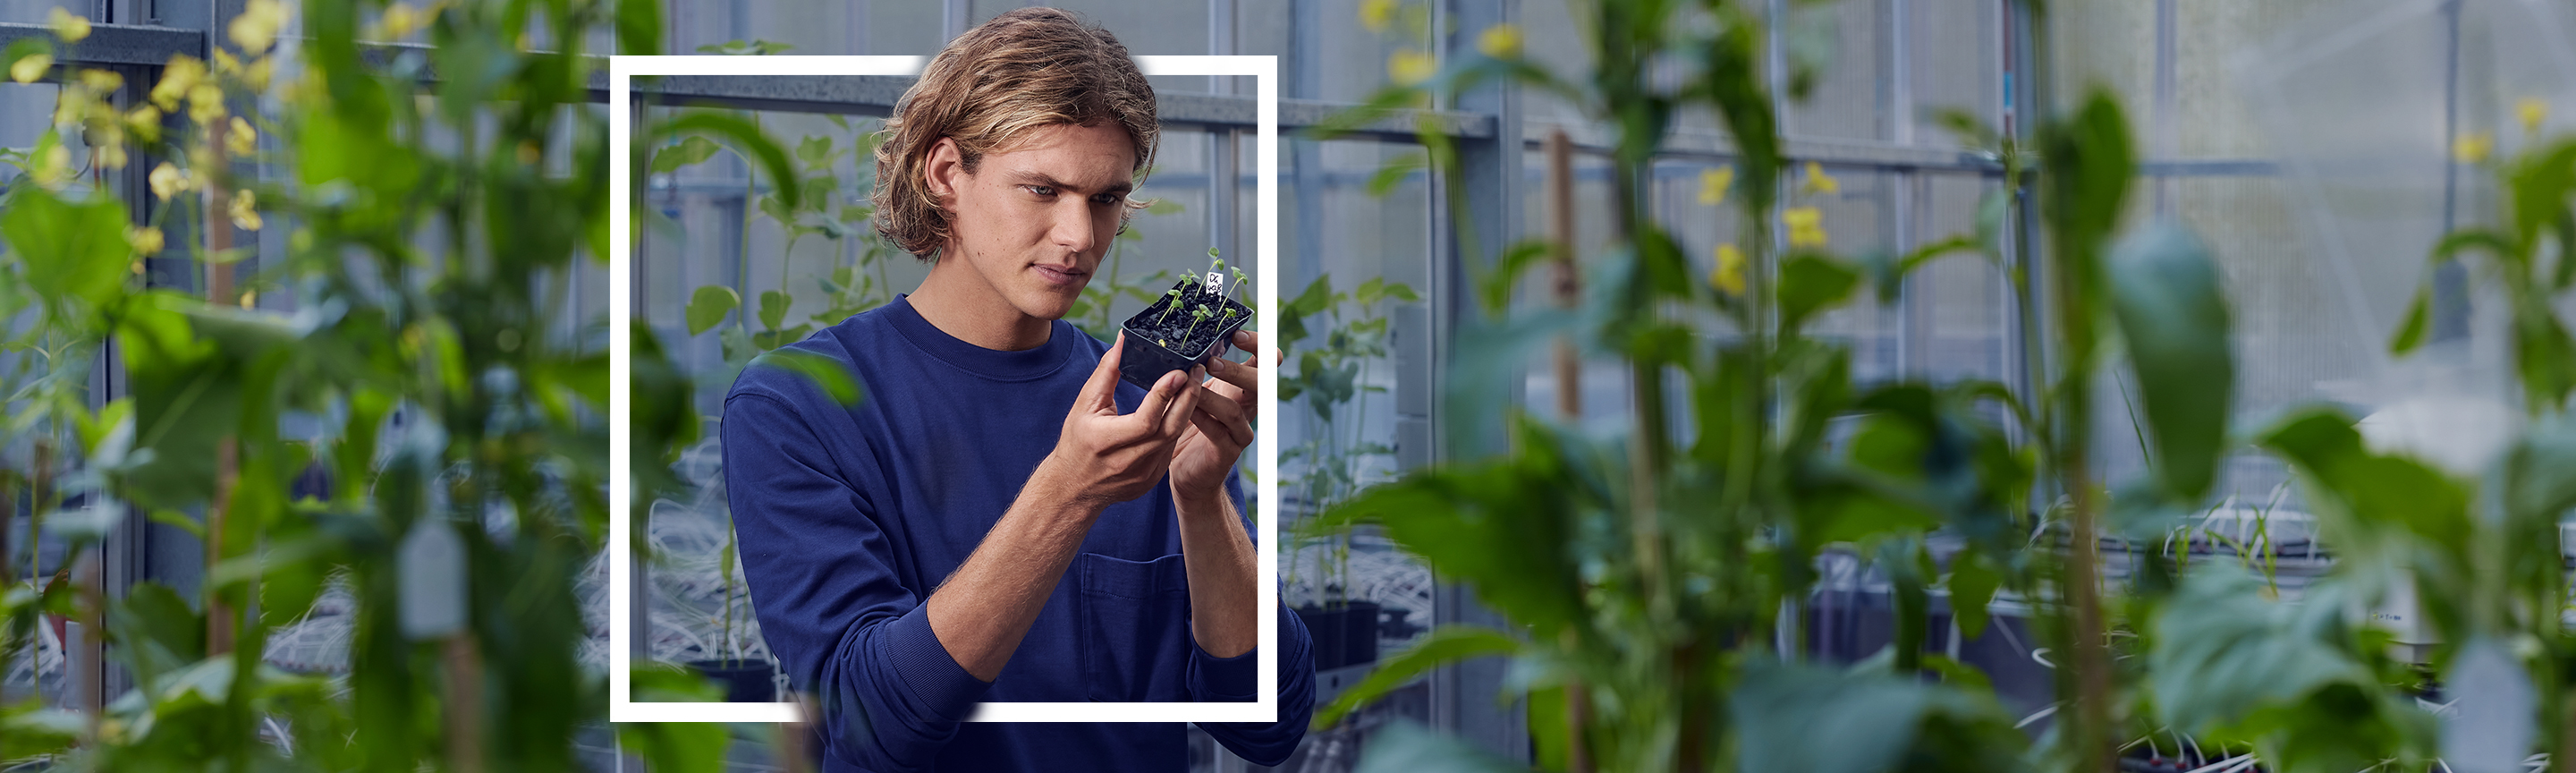 Student in greenhouse holding seedlings